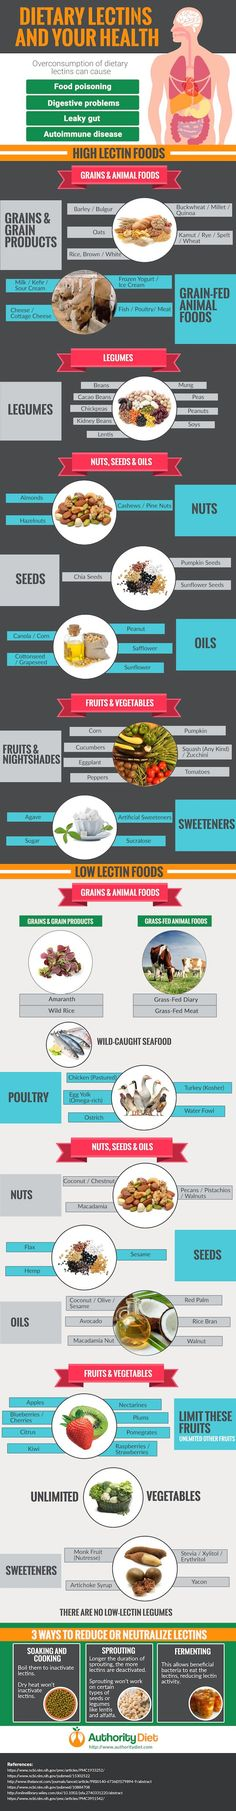 Is Dietary Lectins? Everything You Should Know - Infographic What Is Dietary Lectins? Everything You Should Know - InfographicWhat Is Dietary Lectins? Everything You Should Know - Infographic Low Lectin Foods, Lectin Free Foods, Lectin Free Diet, Low Carb Dinner Recipes, Diet Recipes, Healthy Recipes, Plant Paradox Diet, Lectins, Healthy Diet Tips